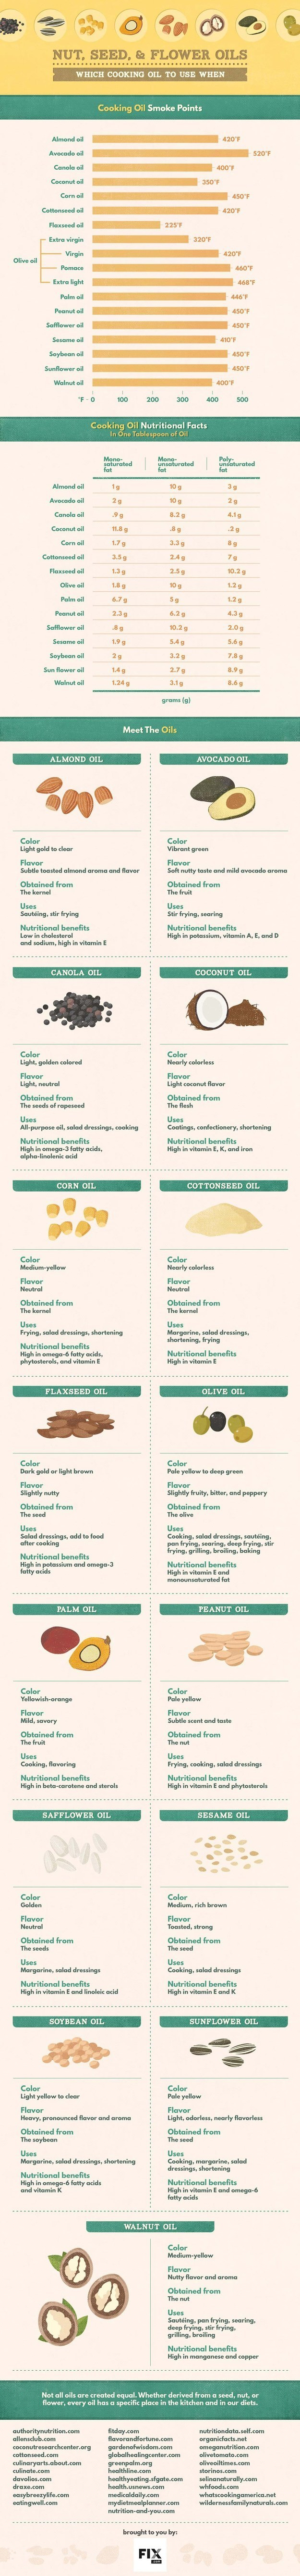 For trying new, healthier cooking oils.